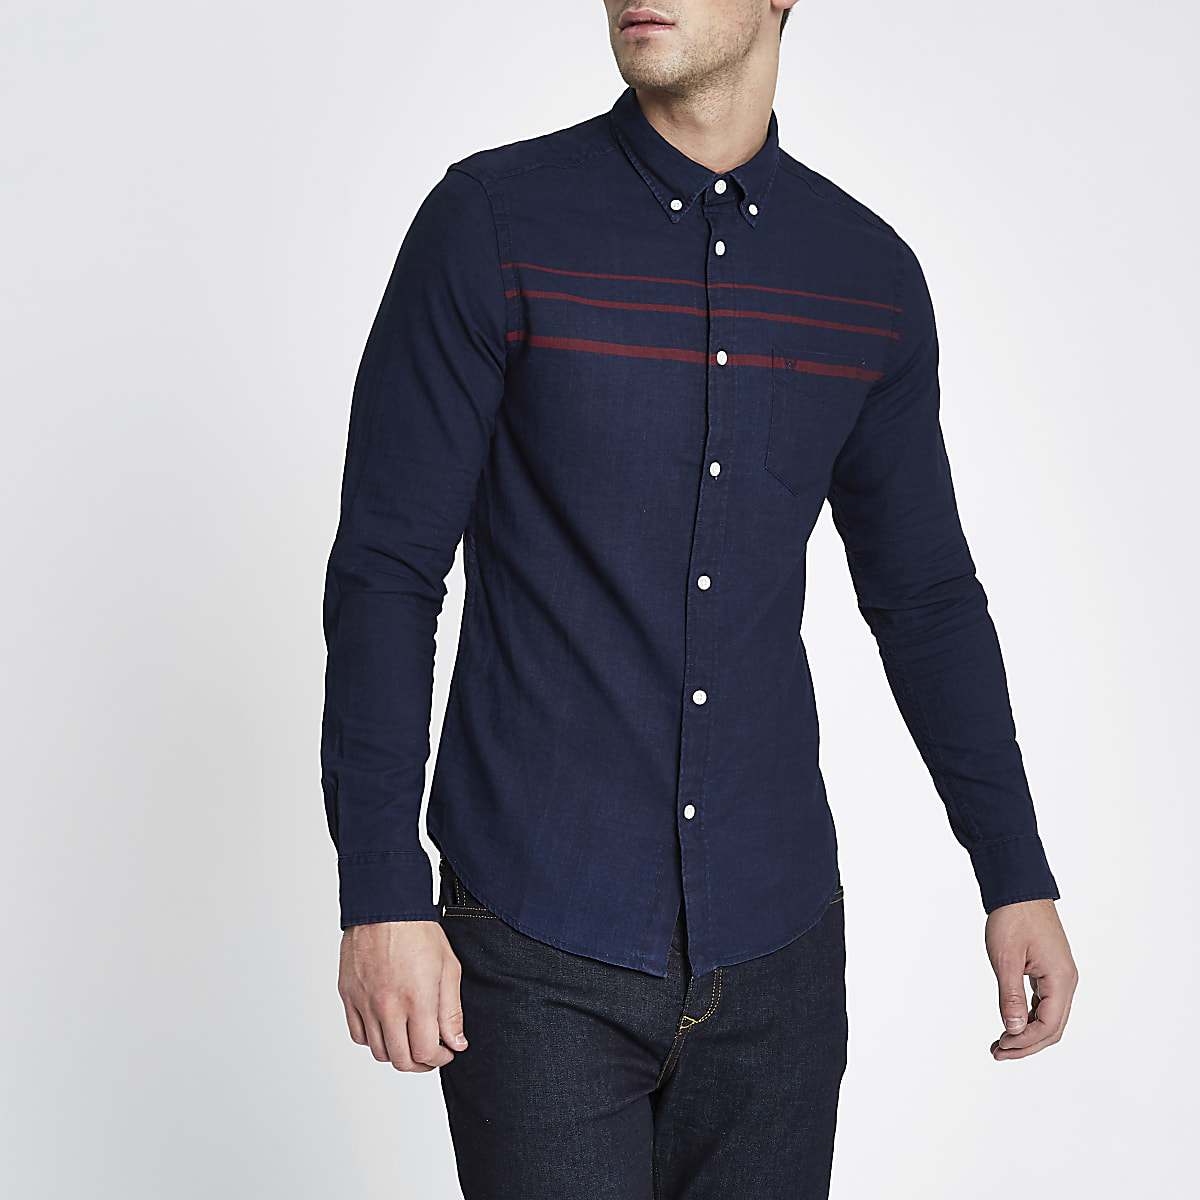 Wrangler navy stripe long sleeve pocket shirt